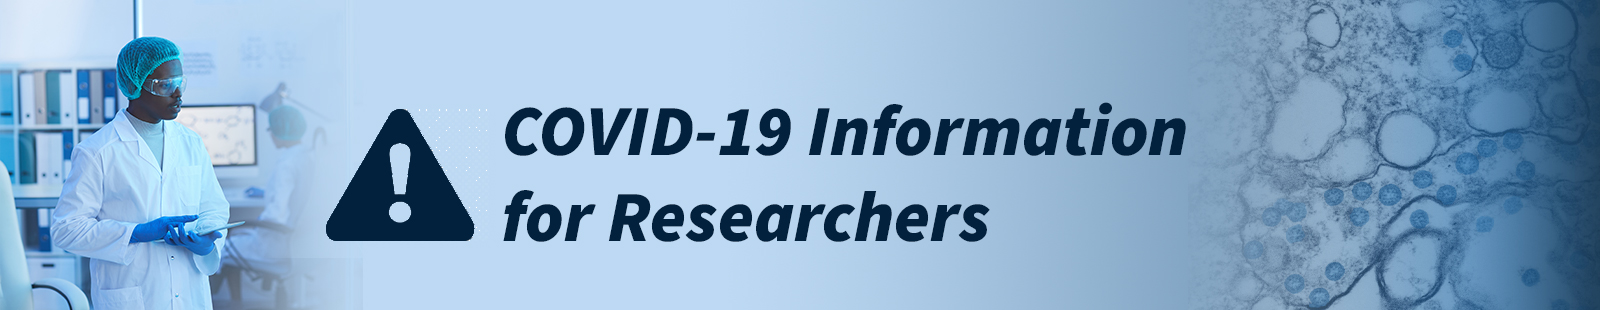 COVID-19 Information for Researchers